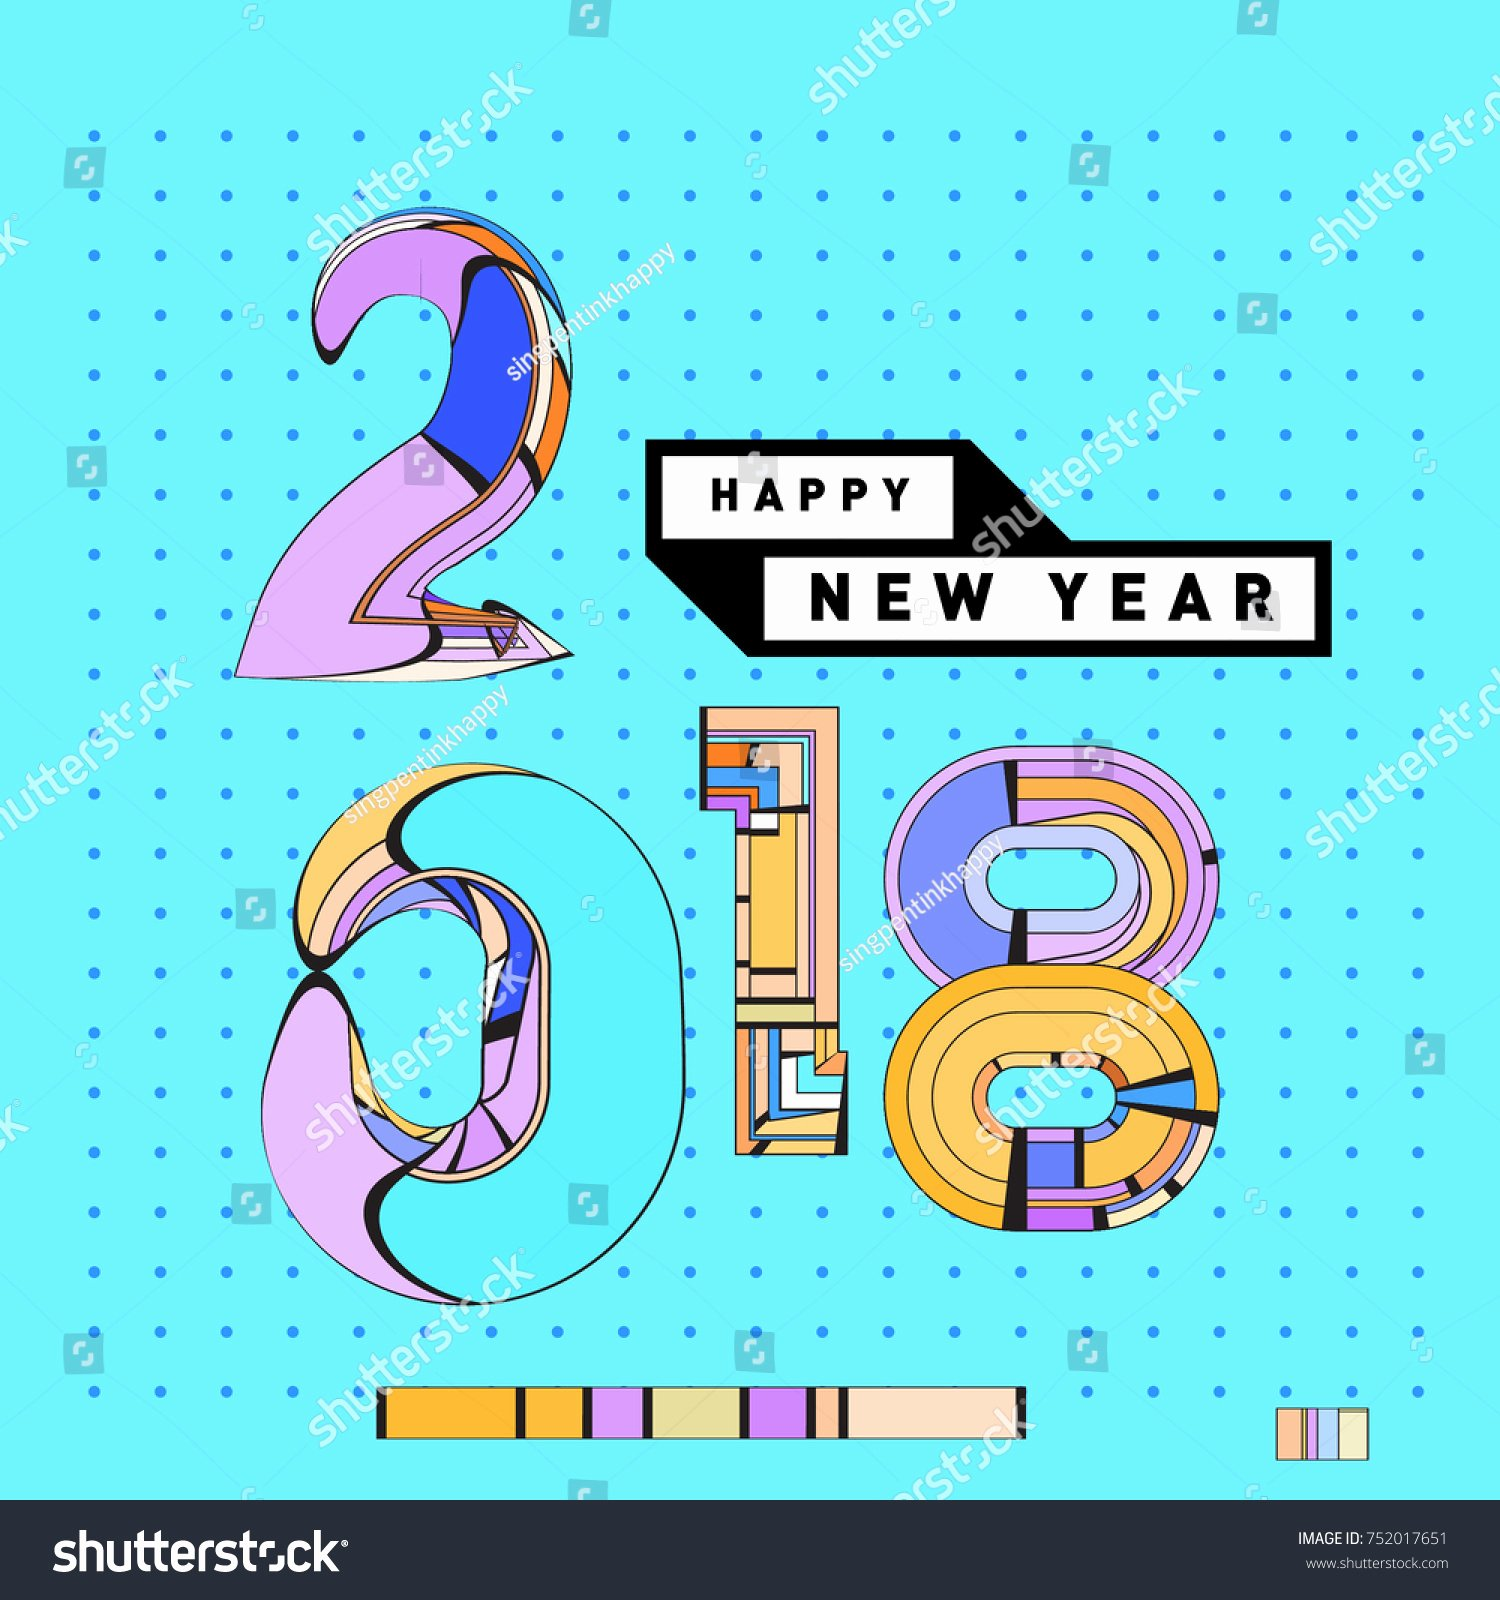 Happy New Year Email Template Luxury Happy New Year 2018 Email Template – Merry Christmas